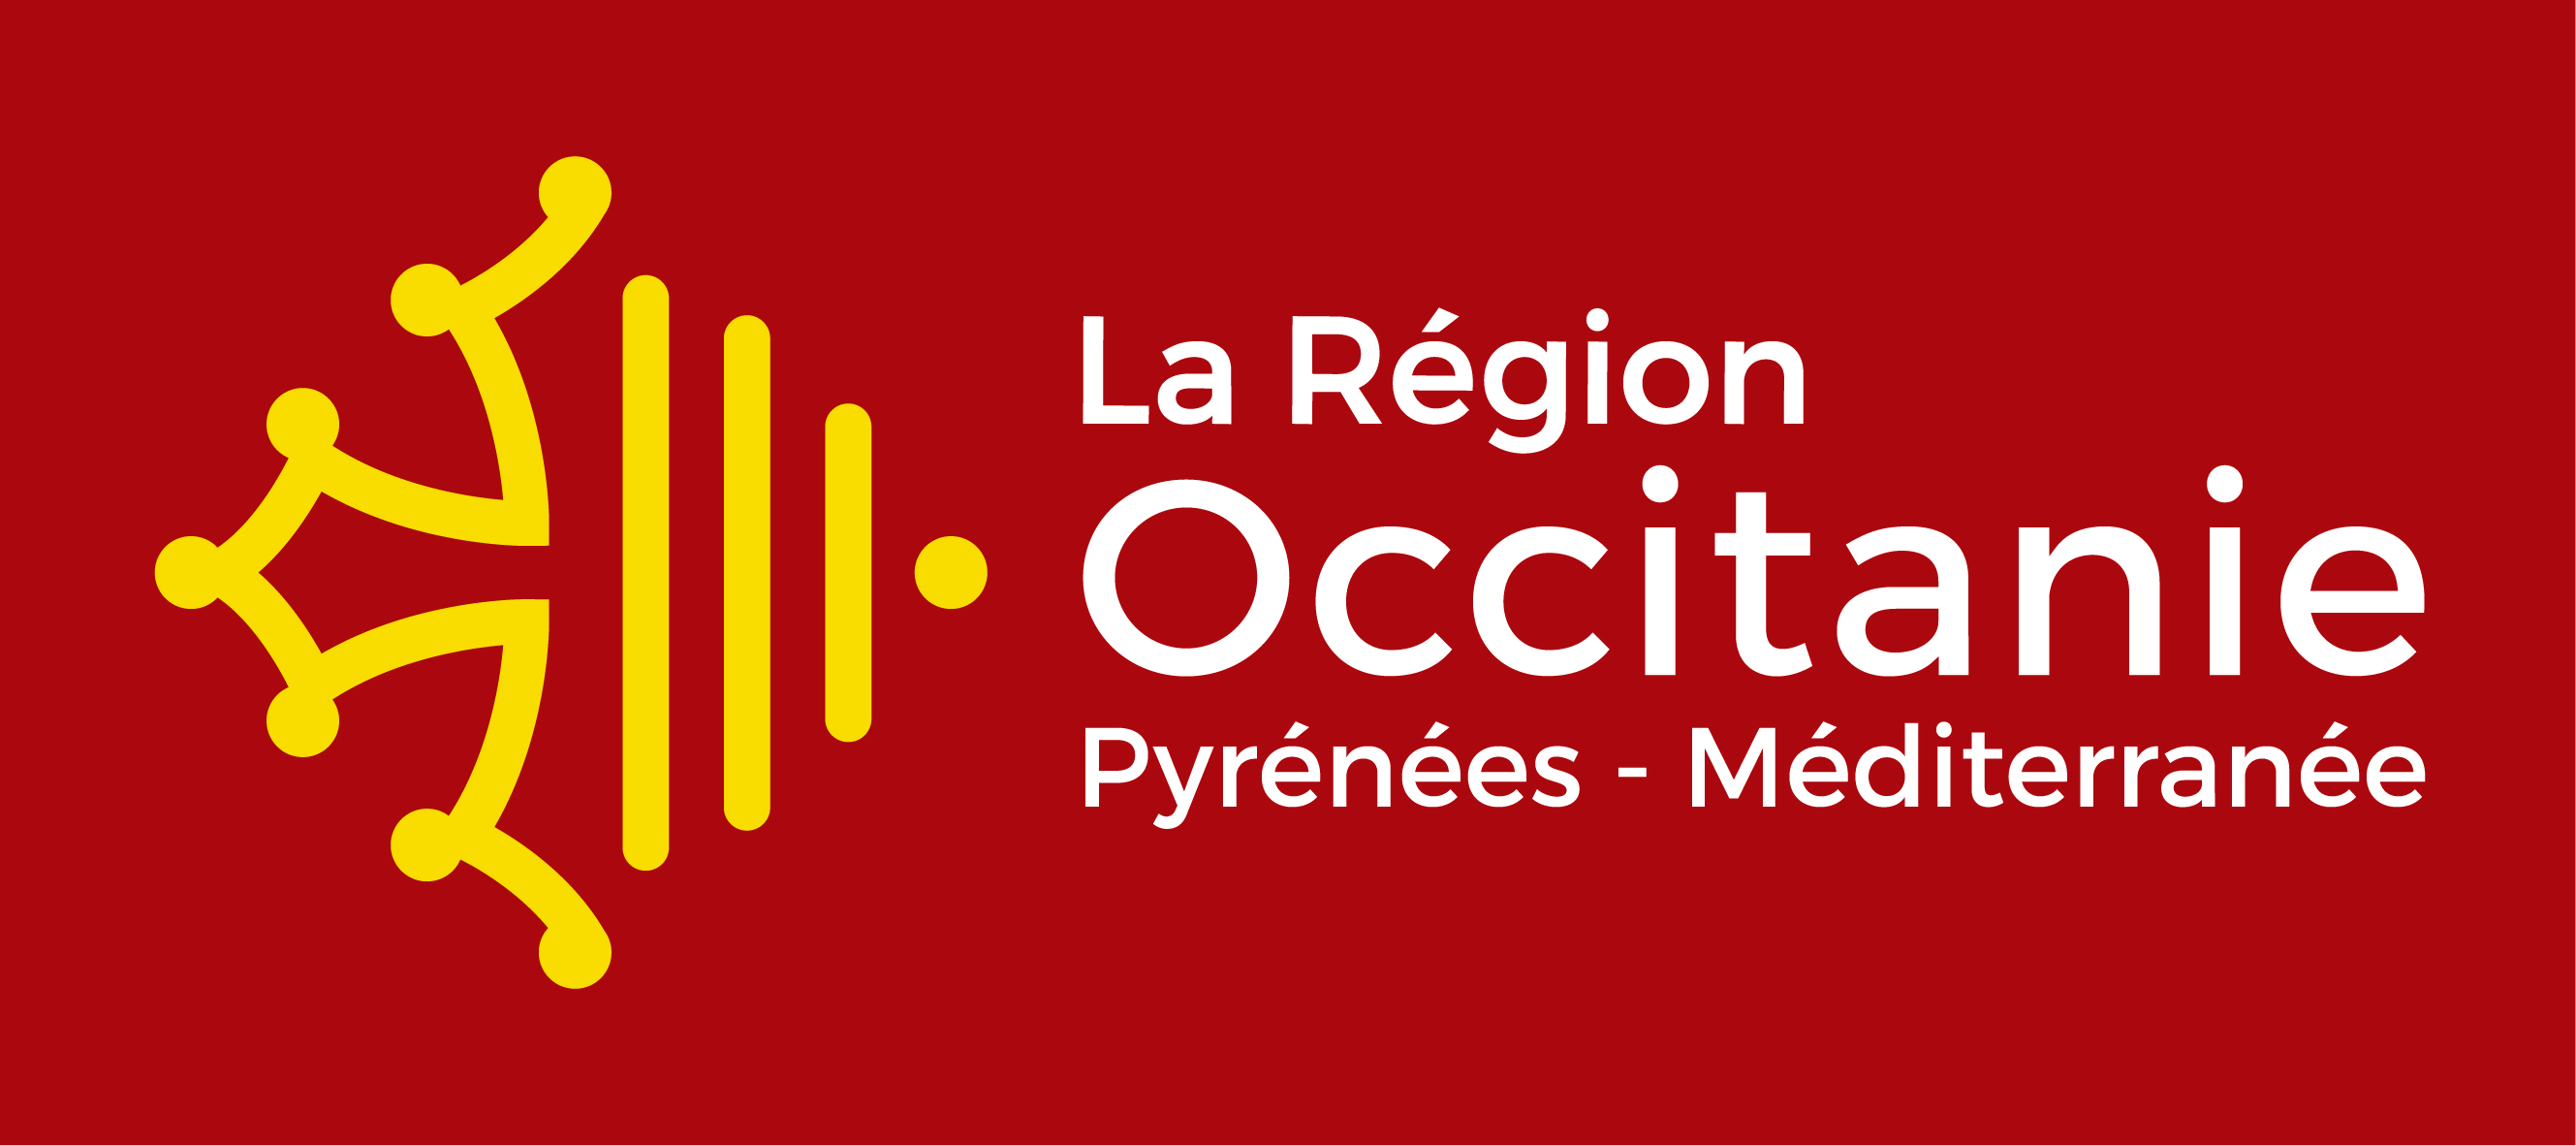 https://foh31.fr/wp-content/uploads/2017/11/Logo_Occitanie_horizontal.jpg